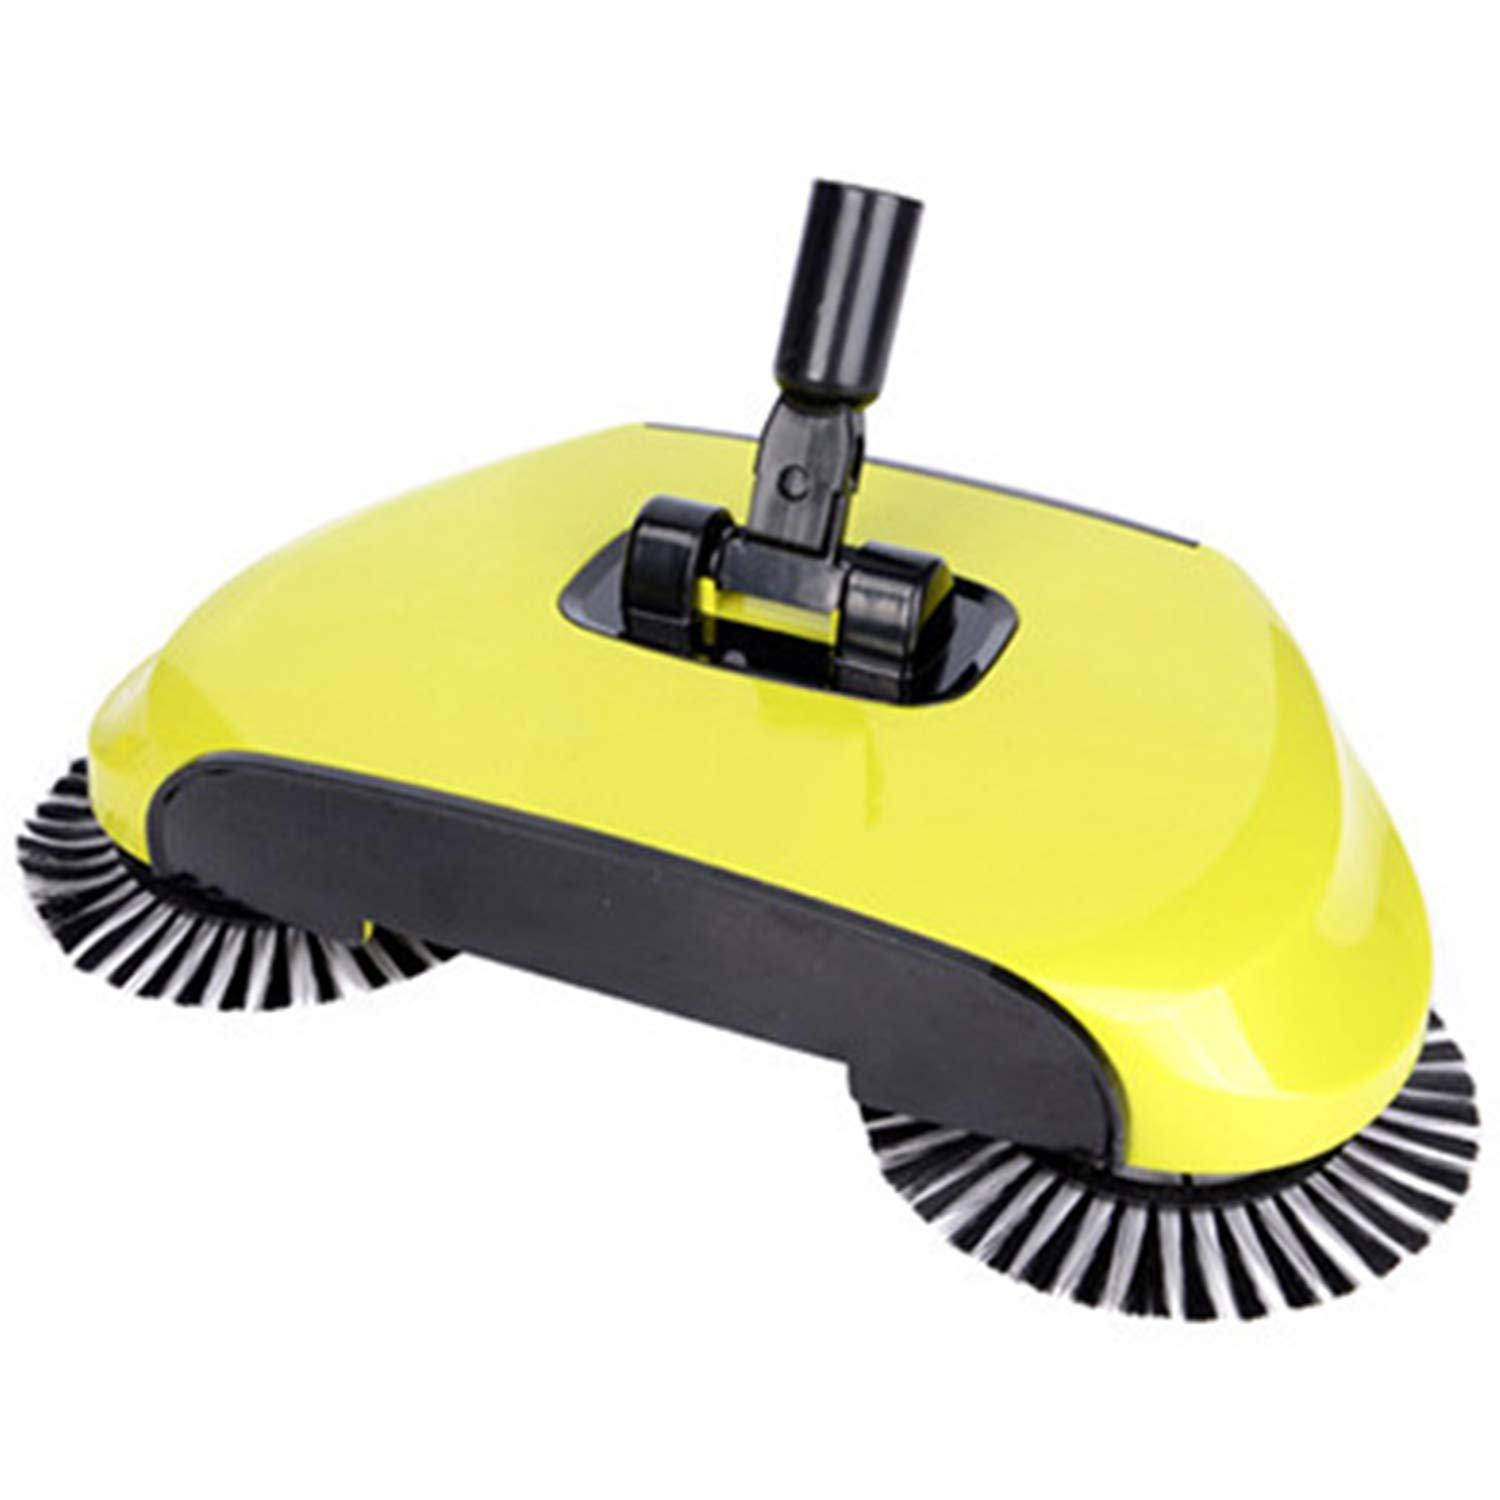 PAXLWSSY Lazy 3 in 1 Household Cleaning Hand Push Automatic Sweeper Broom Including Broom,Dustpan and Trash Bin Cleaner Without Electricity Environmental,Yellow